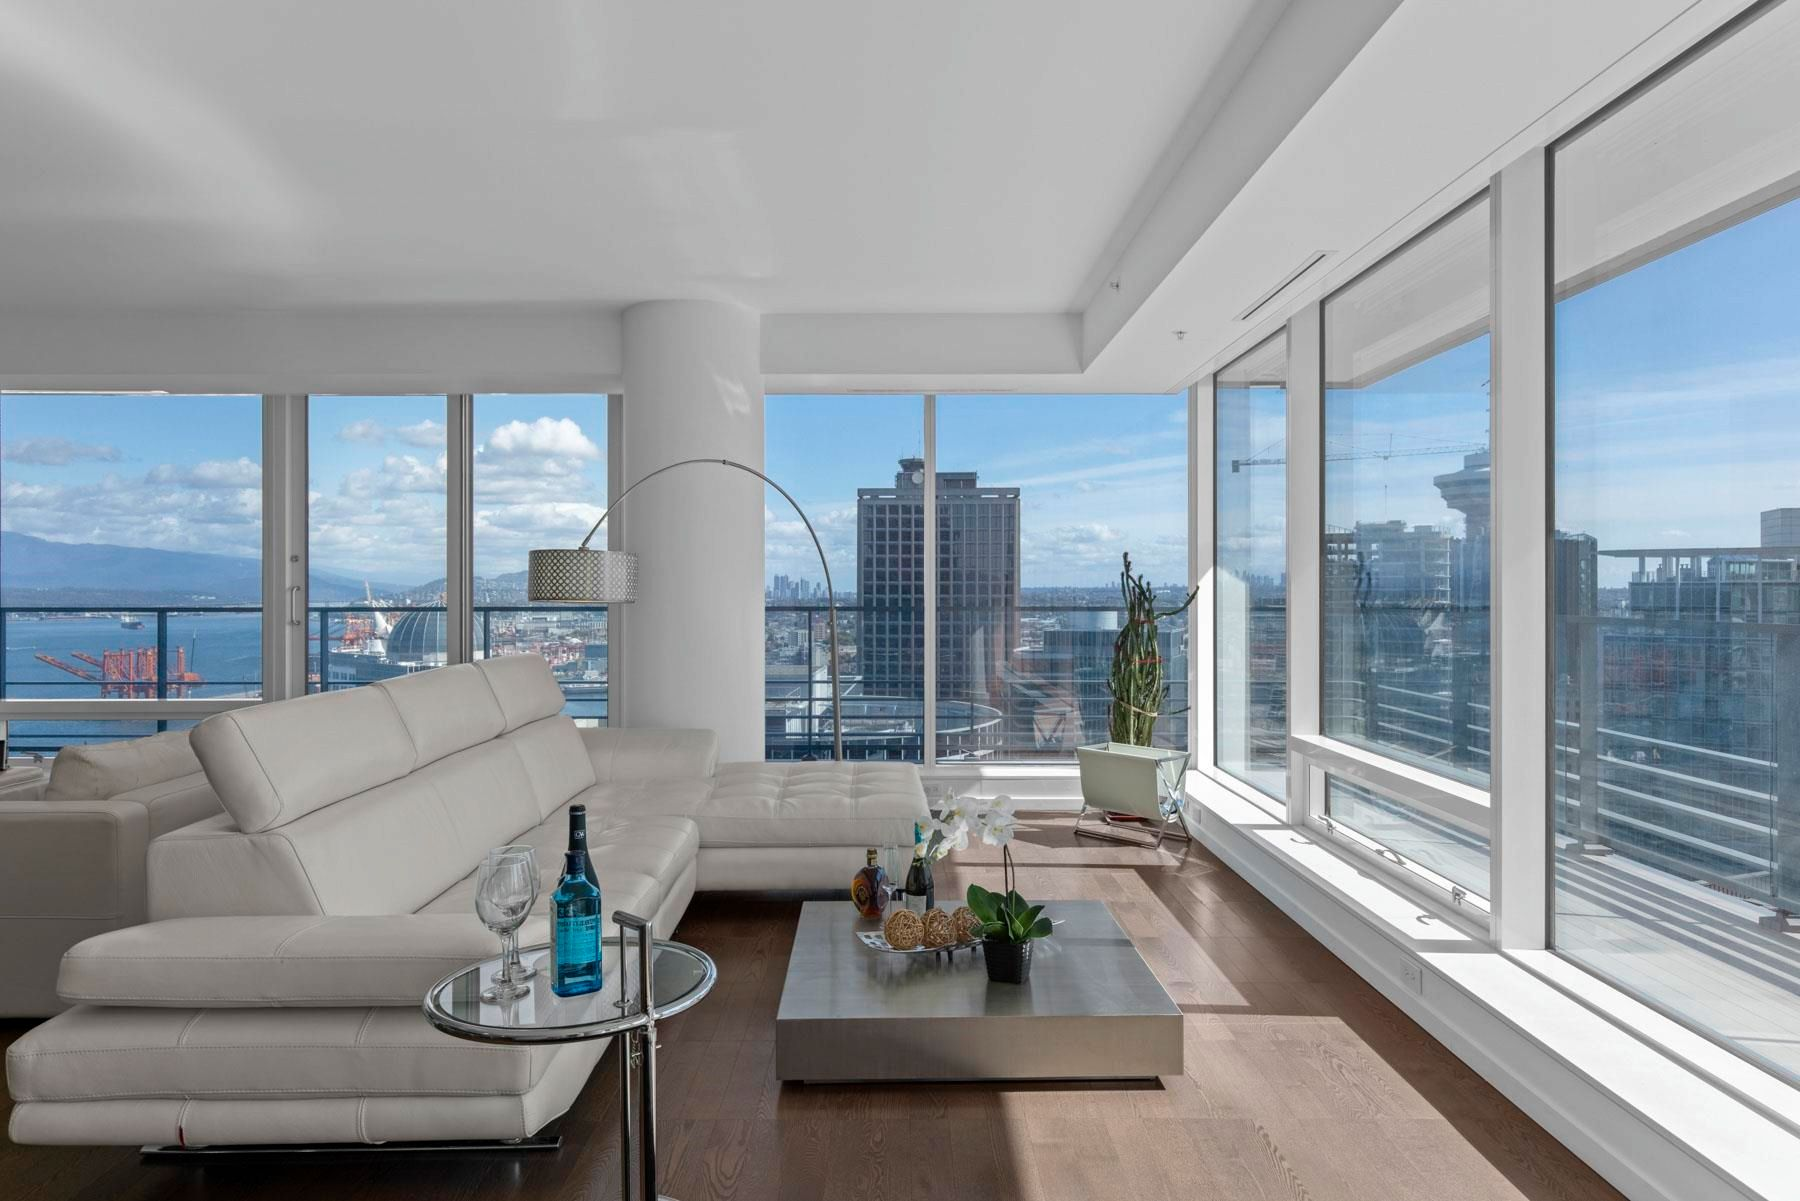 Main Photo: 3403 1011 W CORDOVA STREET in Vancouver: Coal Harbour Condo for sale (Vancouver West)  : MLS®# R2619093